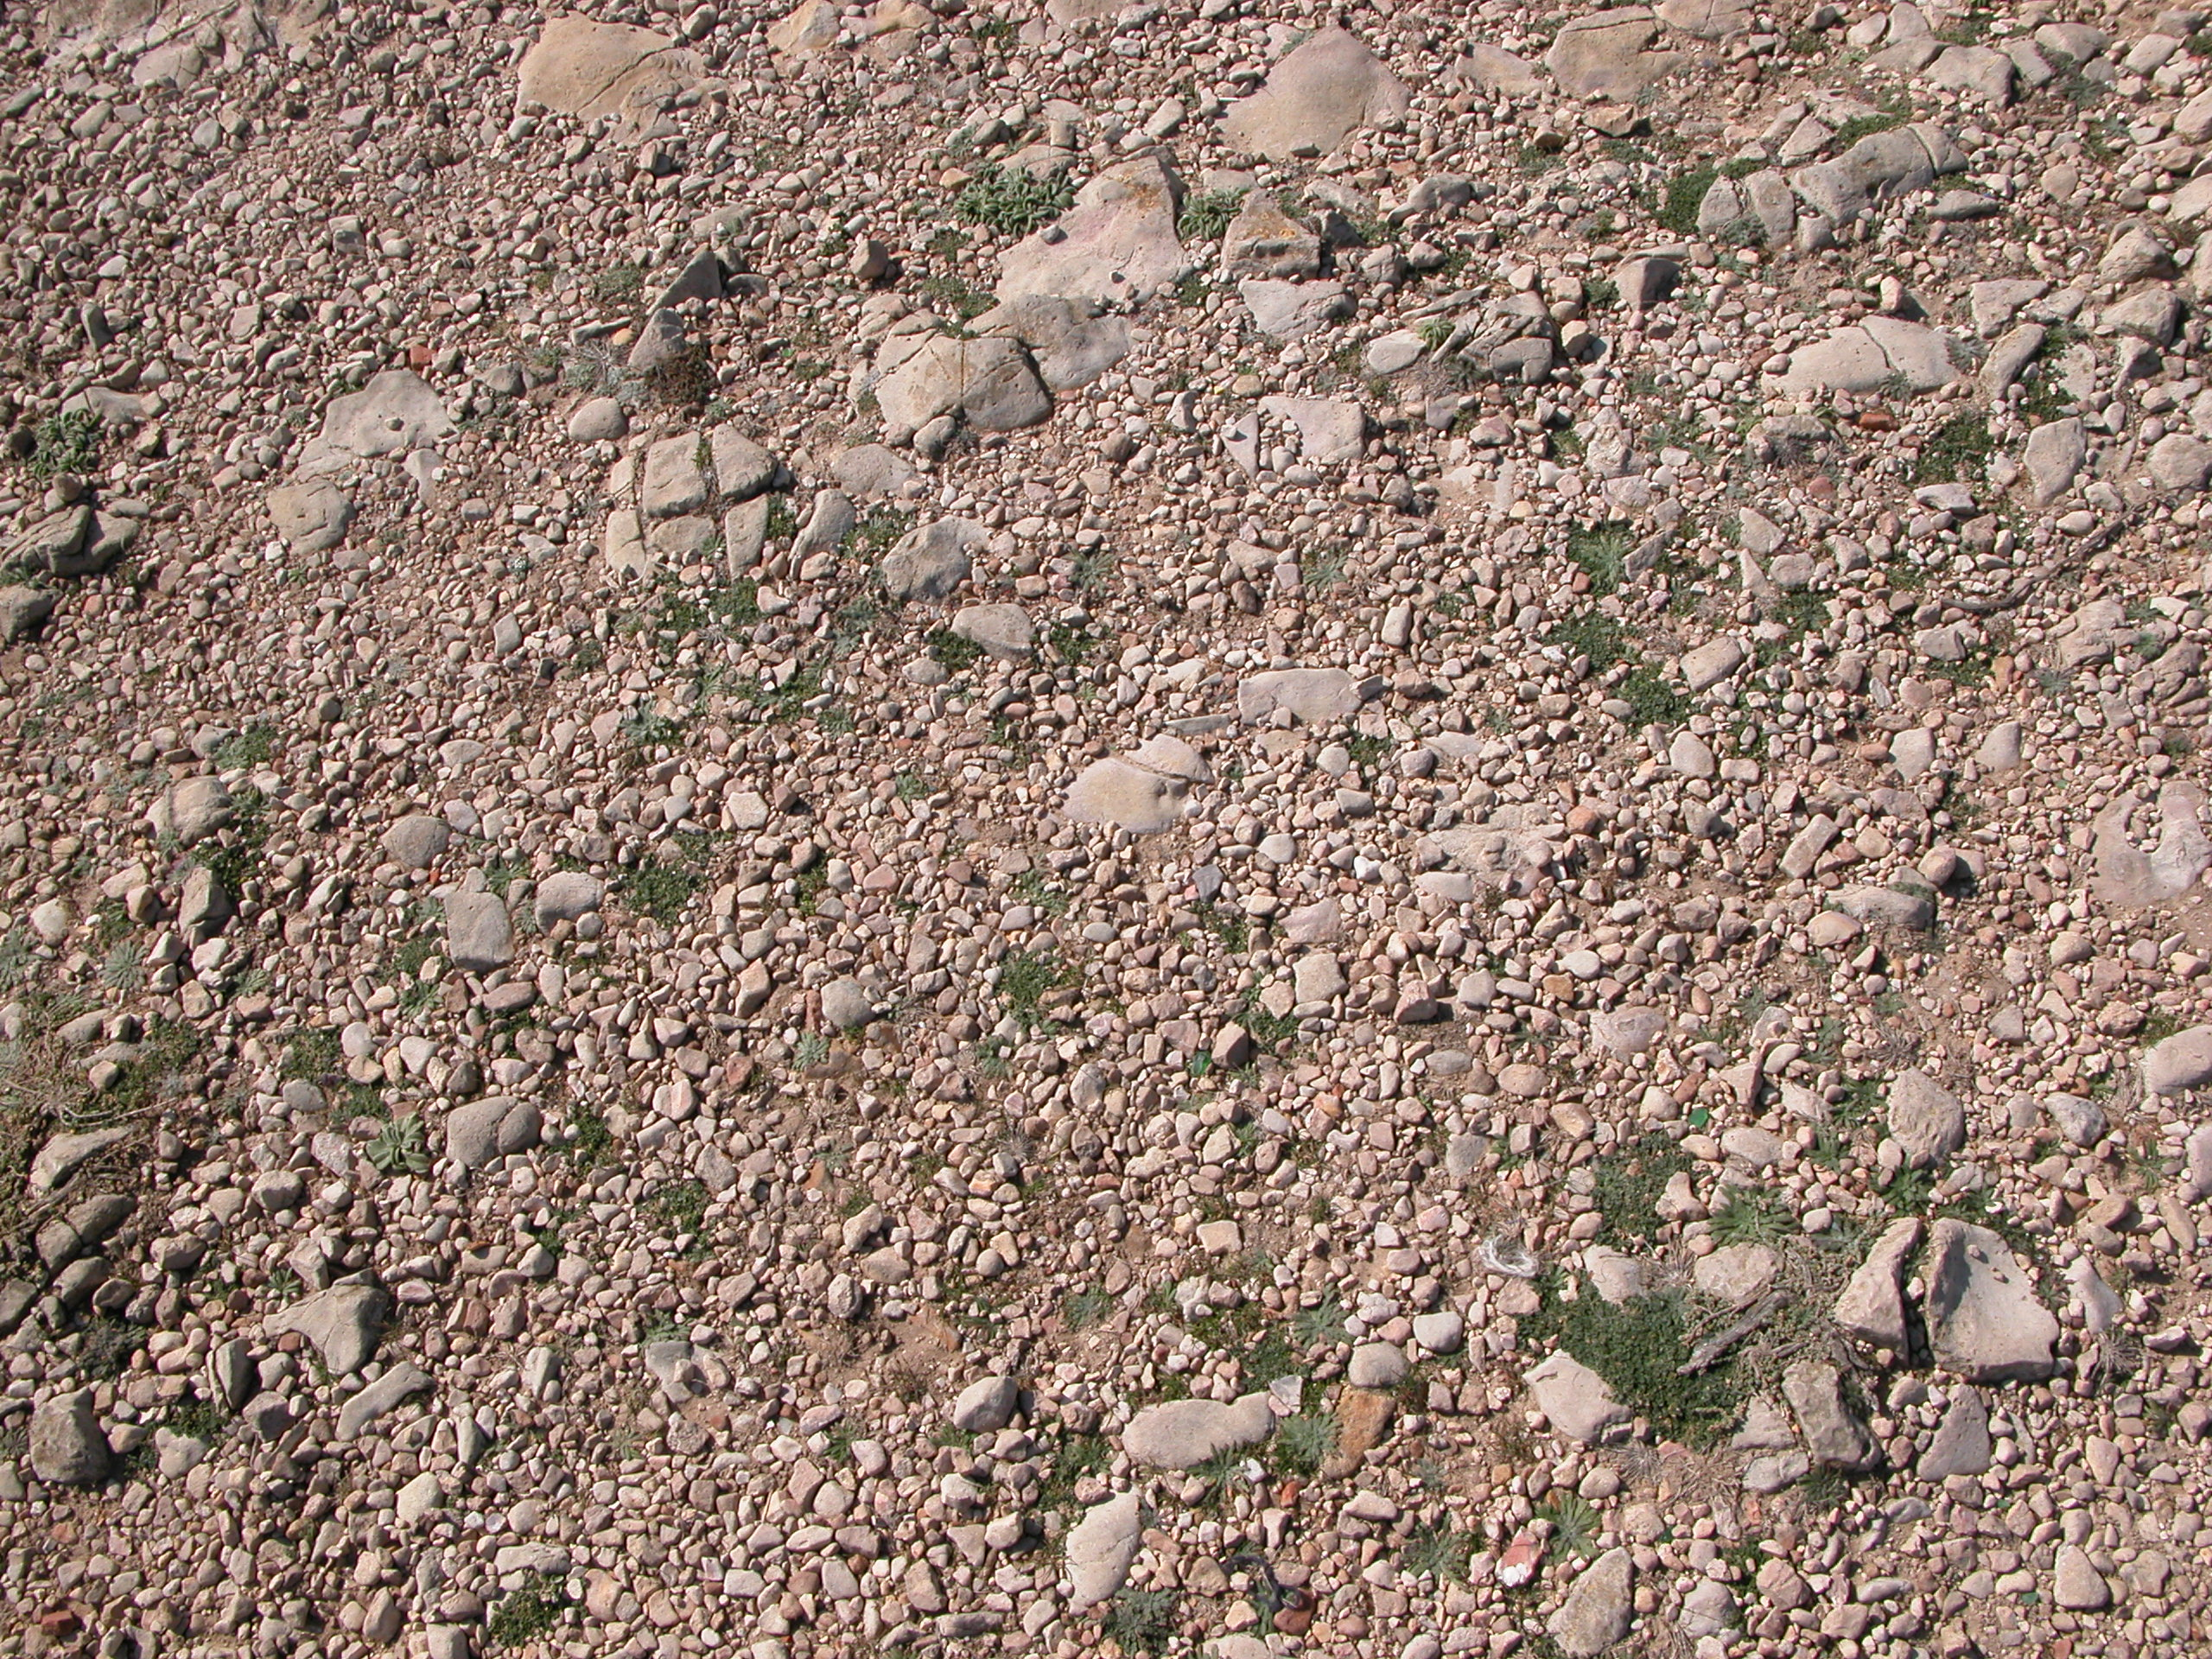 Dirt And Stone : Image after textures rock gravel pebbles dirt floor ground